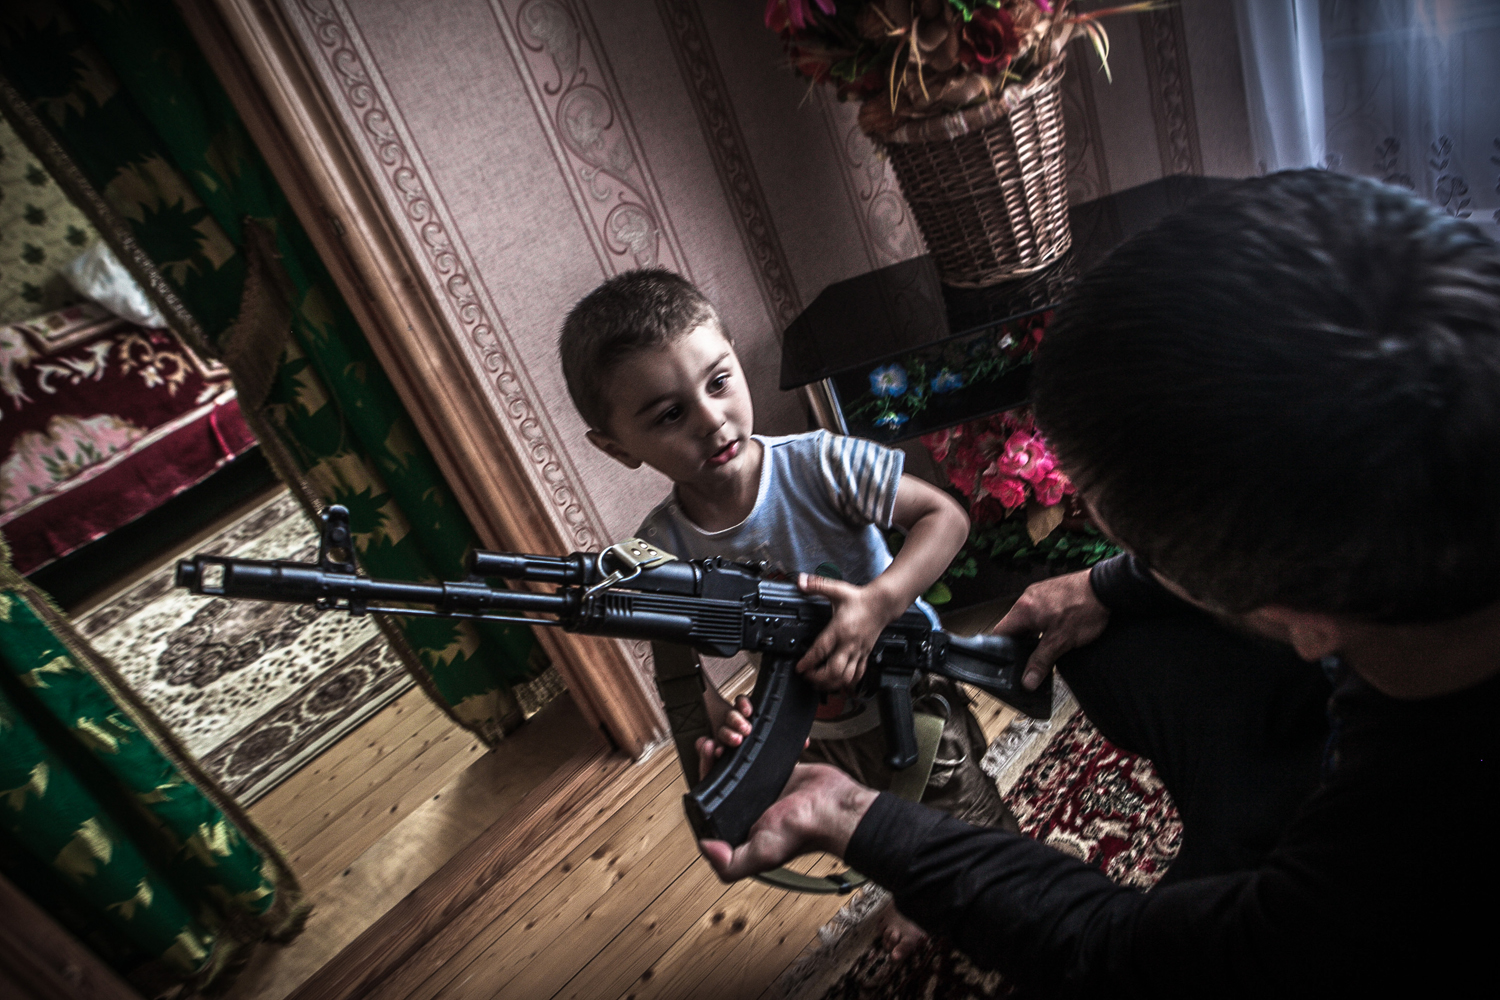 Magomed, a school teacher,  shows to his 2-year-old nephew how to hold a weapon. Dagestan is the biggest and the most multinational republic in the North Caucasus region. The society is mostly based on tradition and still is very conservative.